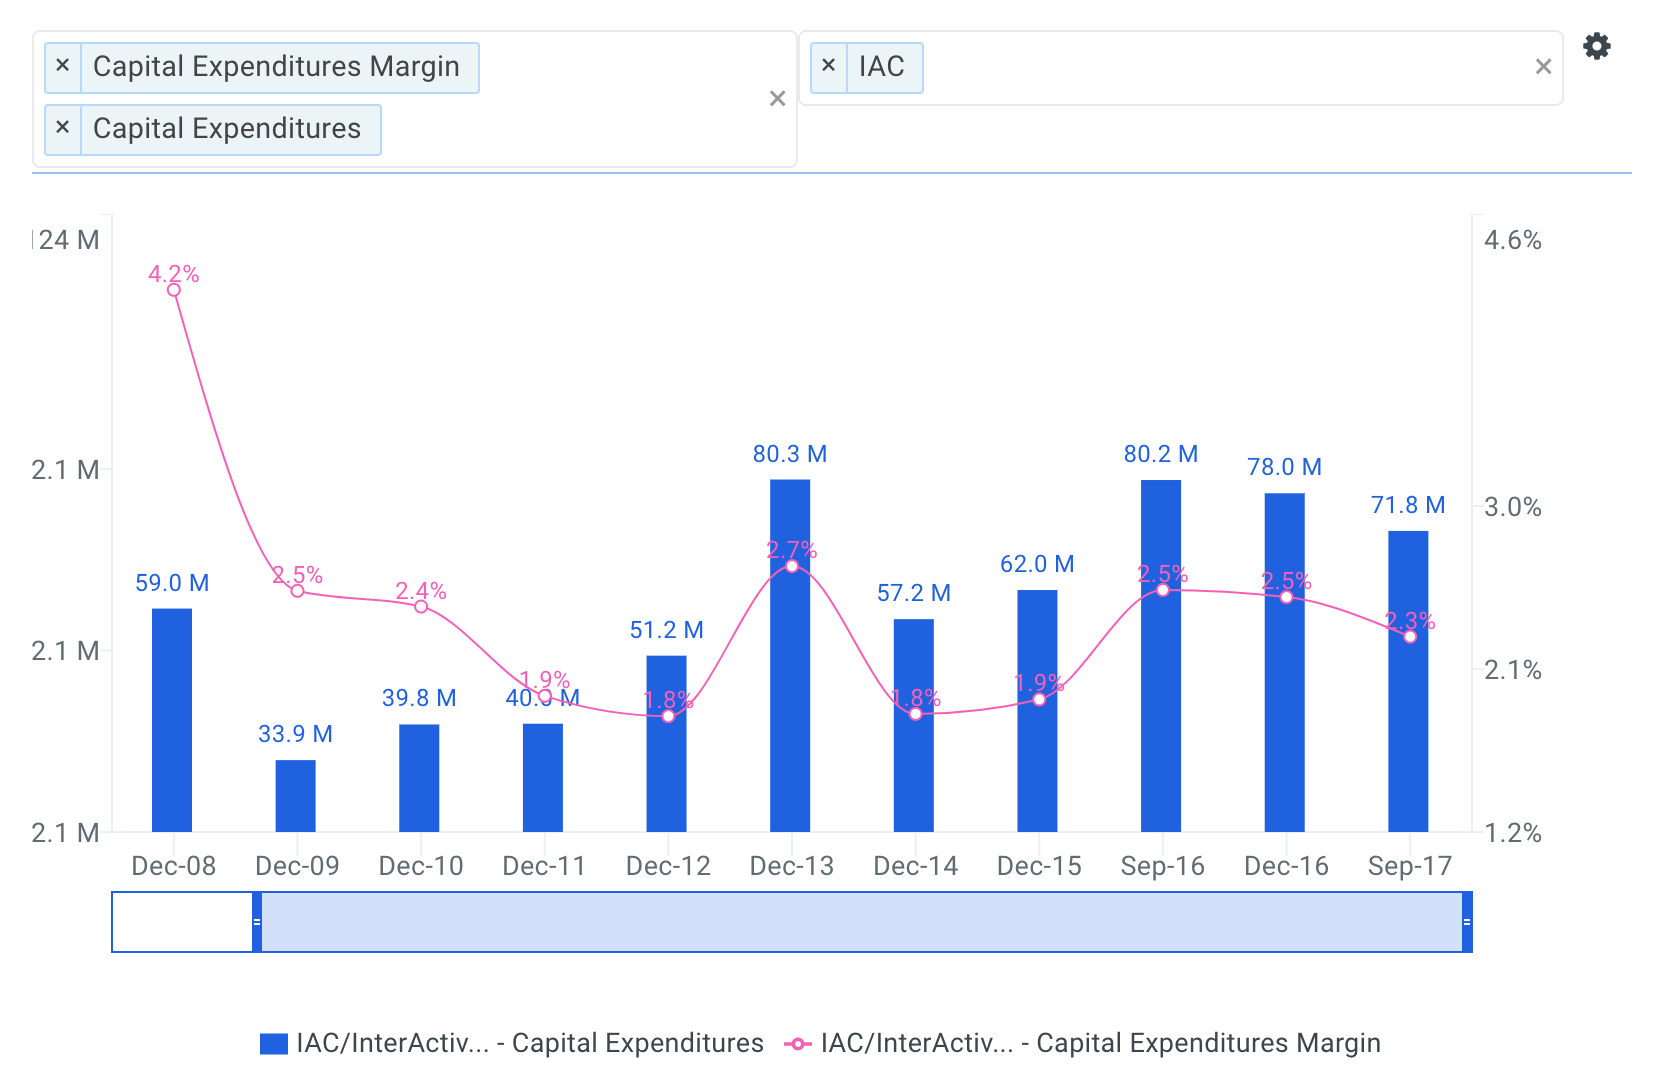 InterActiveCorp Historical Capital Expenditures Chart